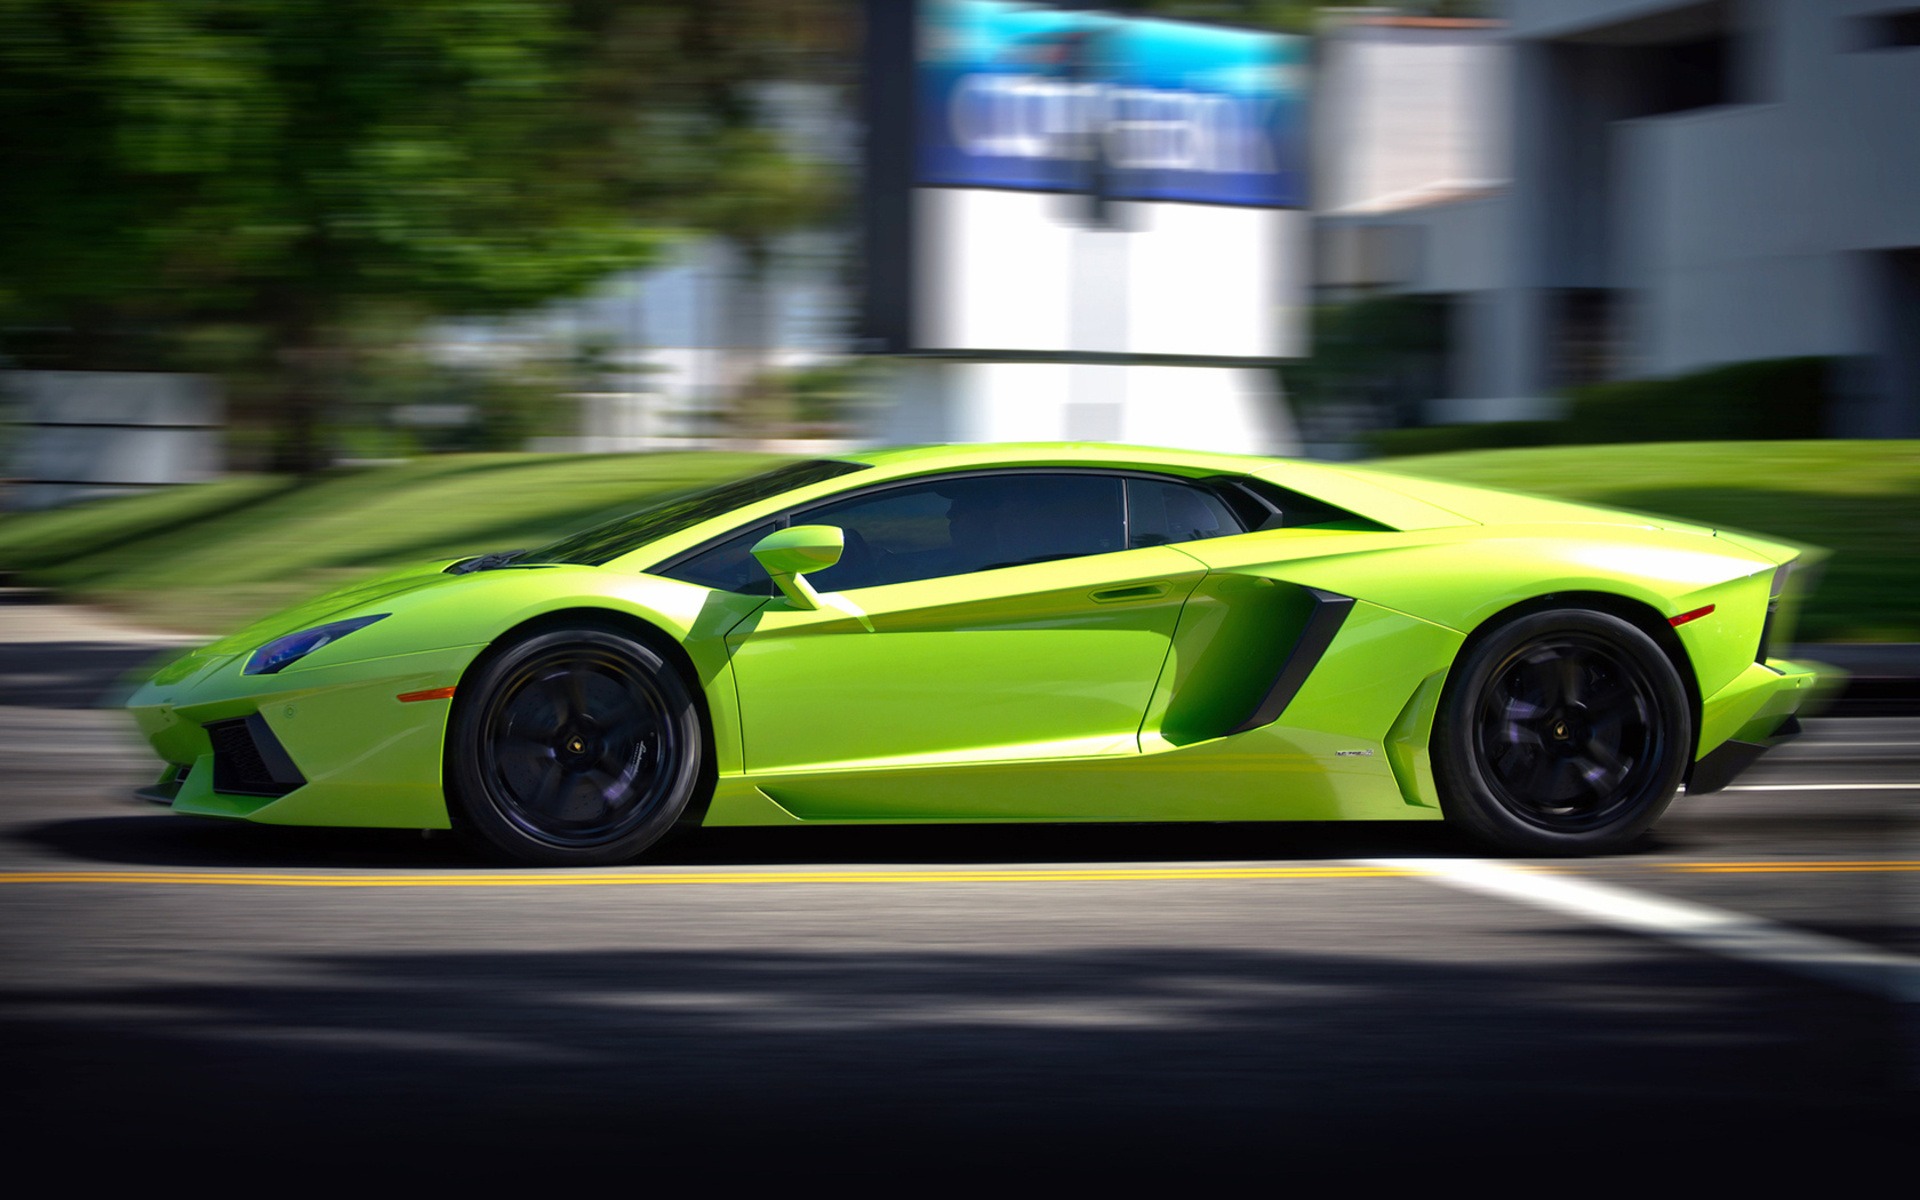 Green Aventador Street Wallpaper 1920x1200 17019